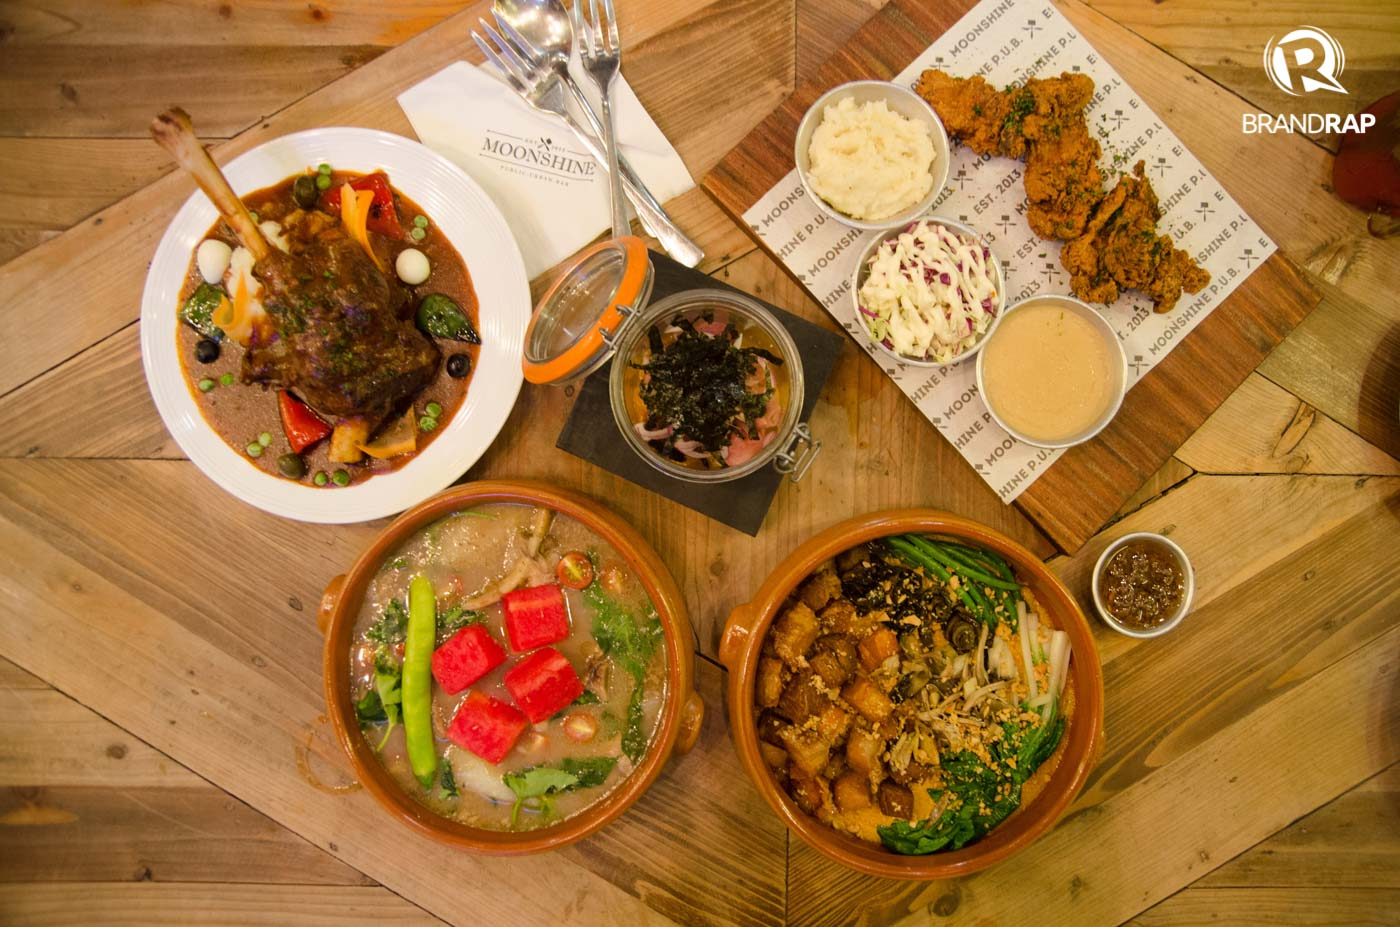 FILIPINO WITH A TWIST. Moonshine offers old favorites with a twist in its menu like Smoked Kinilaw, Lamb Shank Caldereta, Beef Short Rib Sinigang, Crispy Kare-Kare and Dolinou2019s own fried chicken, JFC. Try their secret Danggit and Salted Egg Pizza, too! Photo by Pauee Cadaing/Rappler